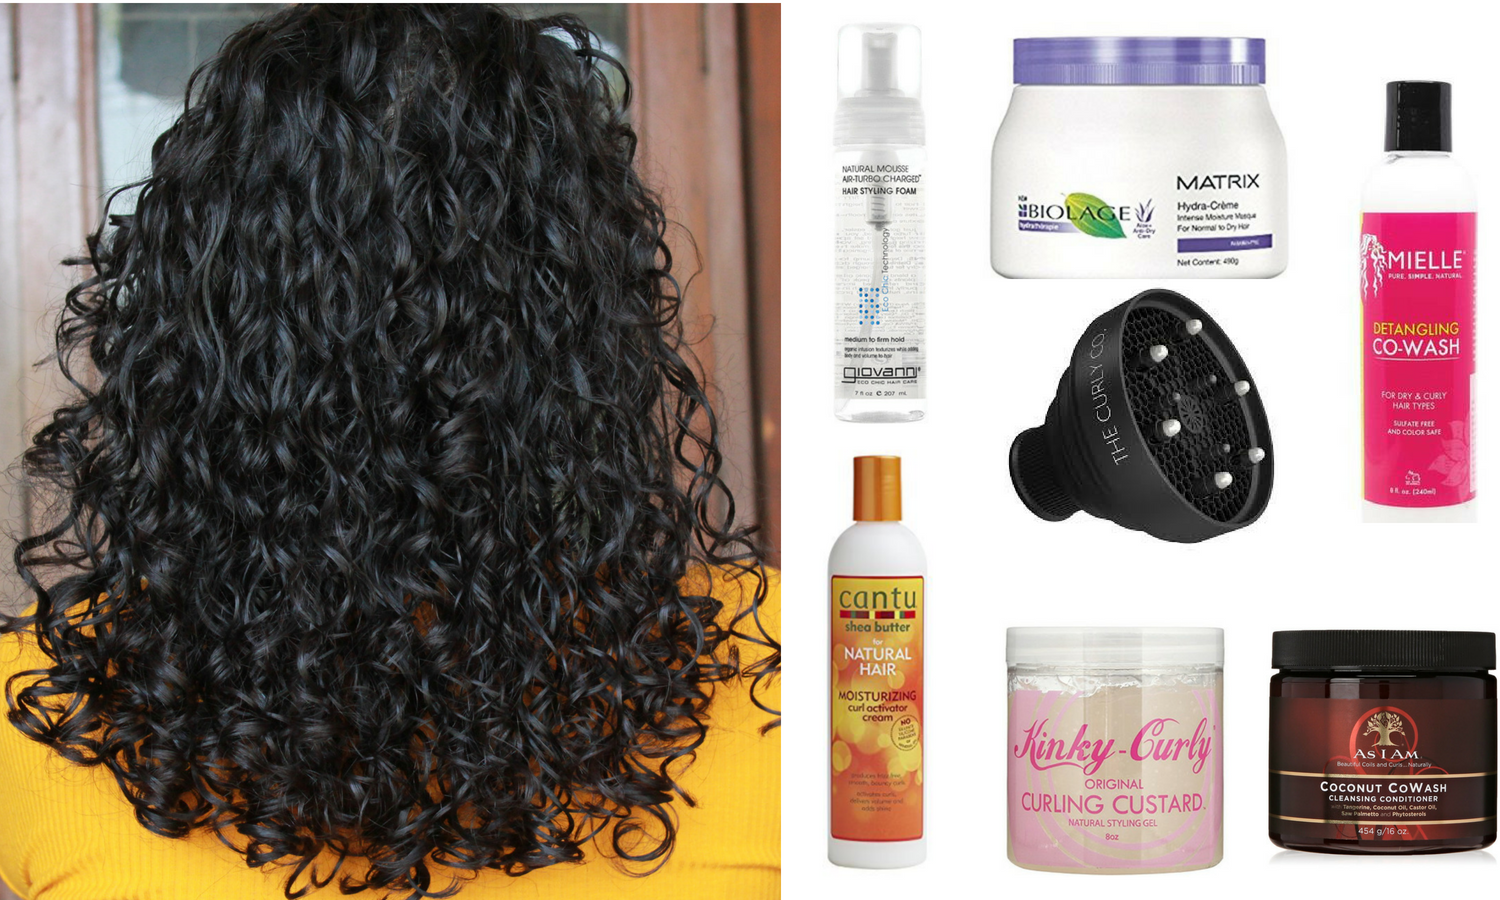 Looking for Curly Hair Products in India? Check out this Epic List!